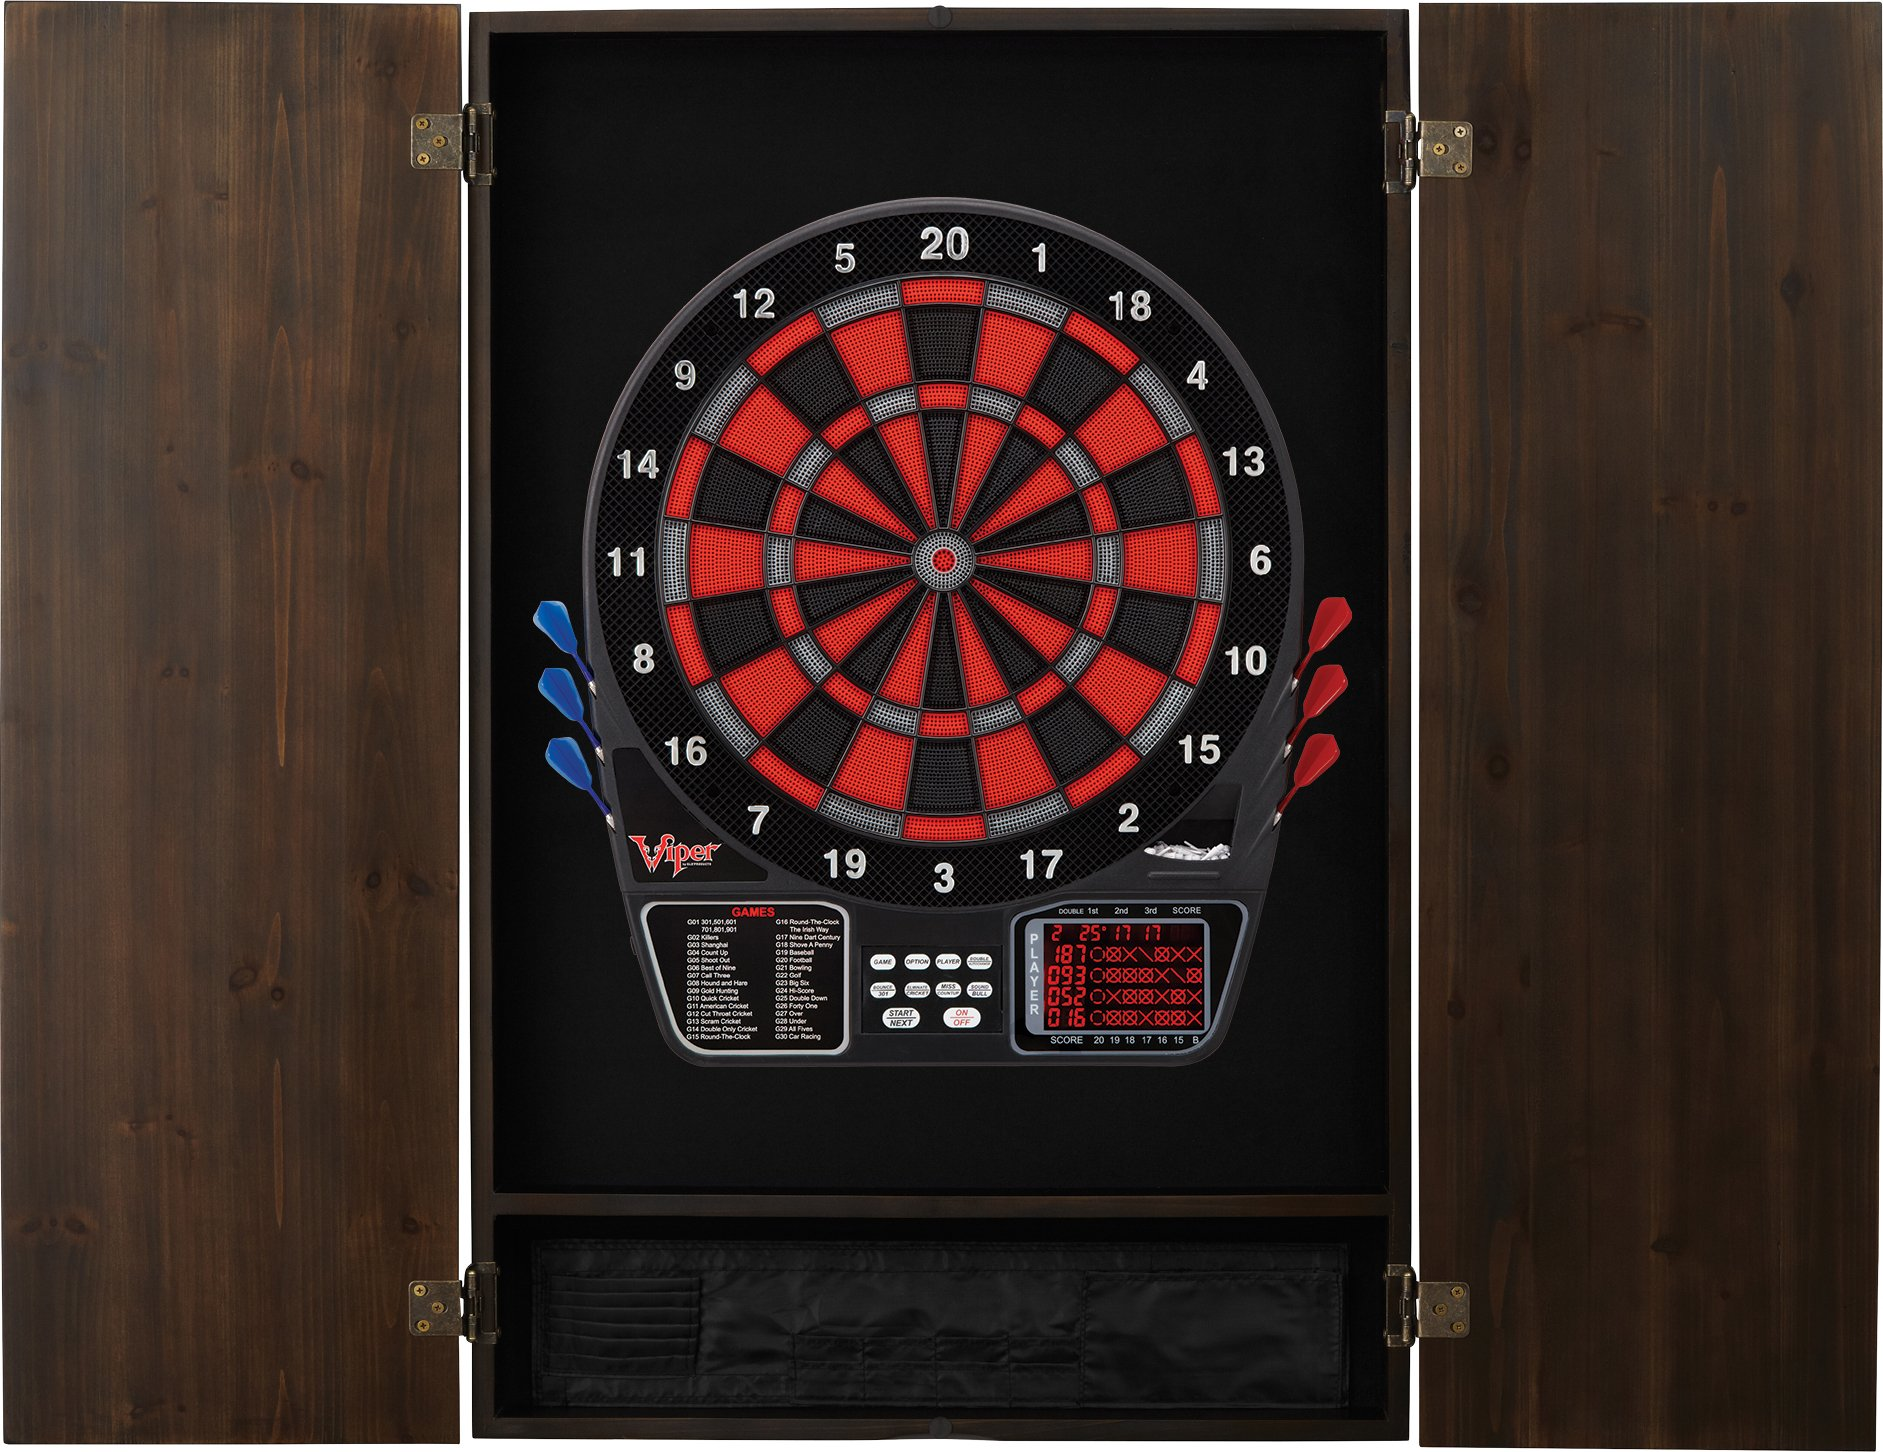 Viper Metropolitan Solid Wood Cabinet & Electronic Dartboard Ready-to-Play Bundle: Deluxe Set (797 Dartboard and Darts), Espresso Finish